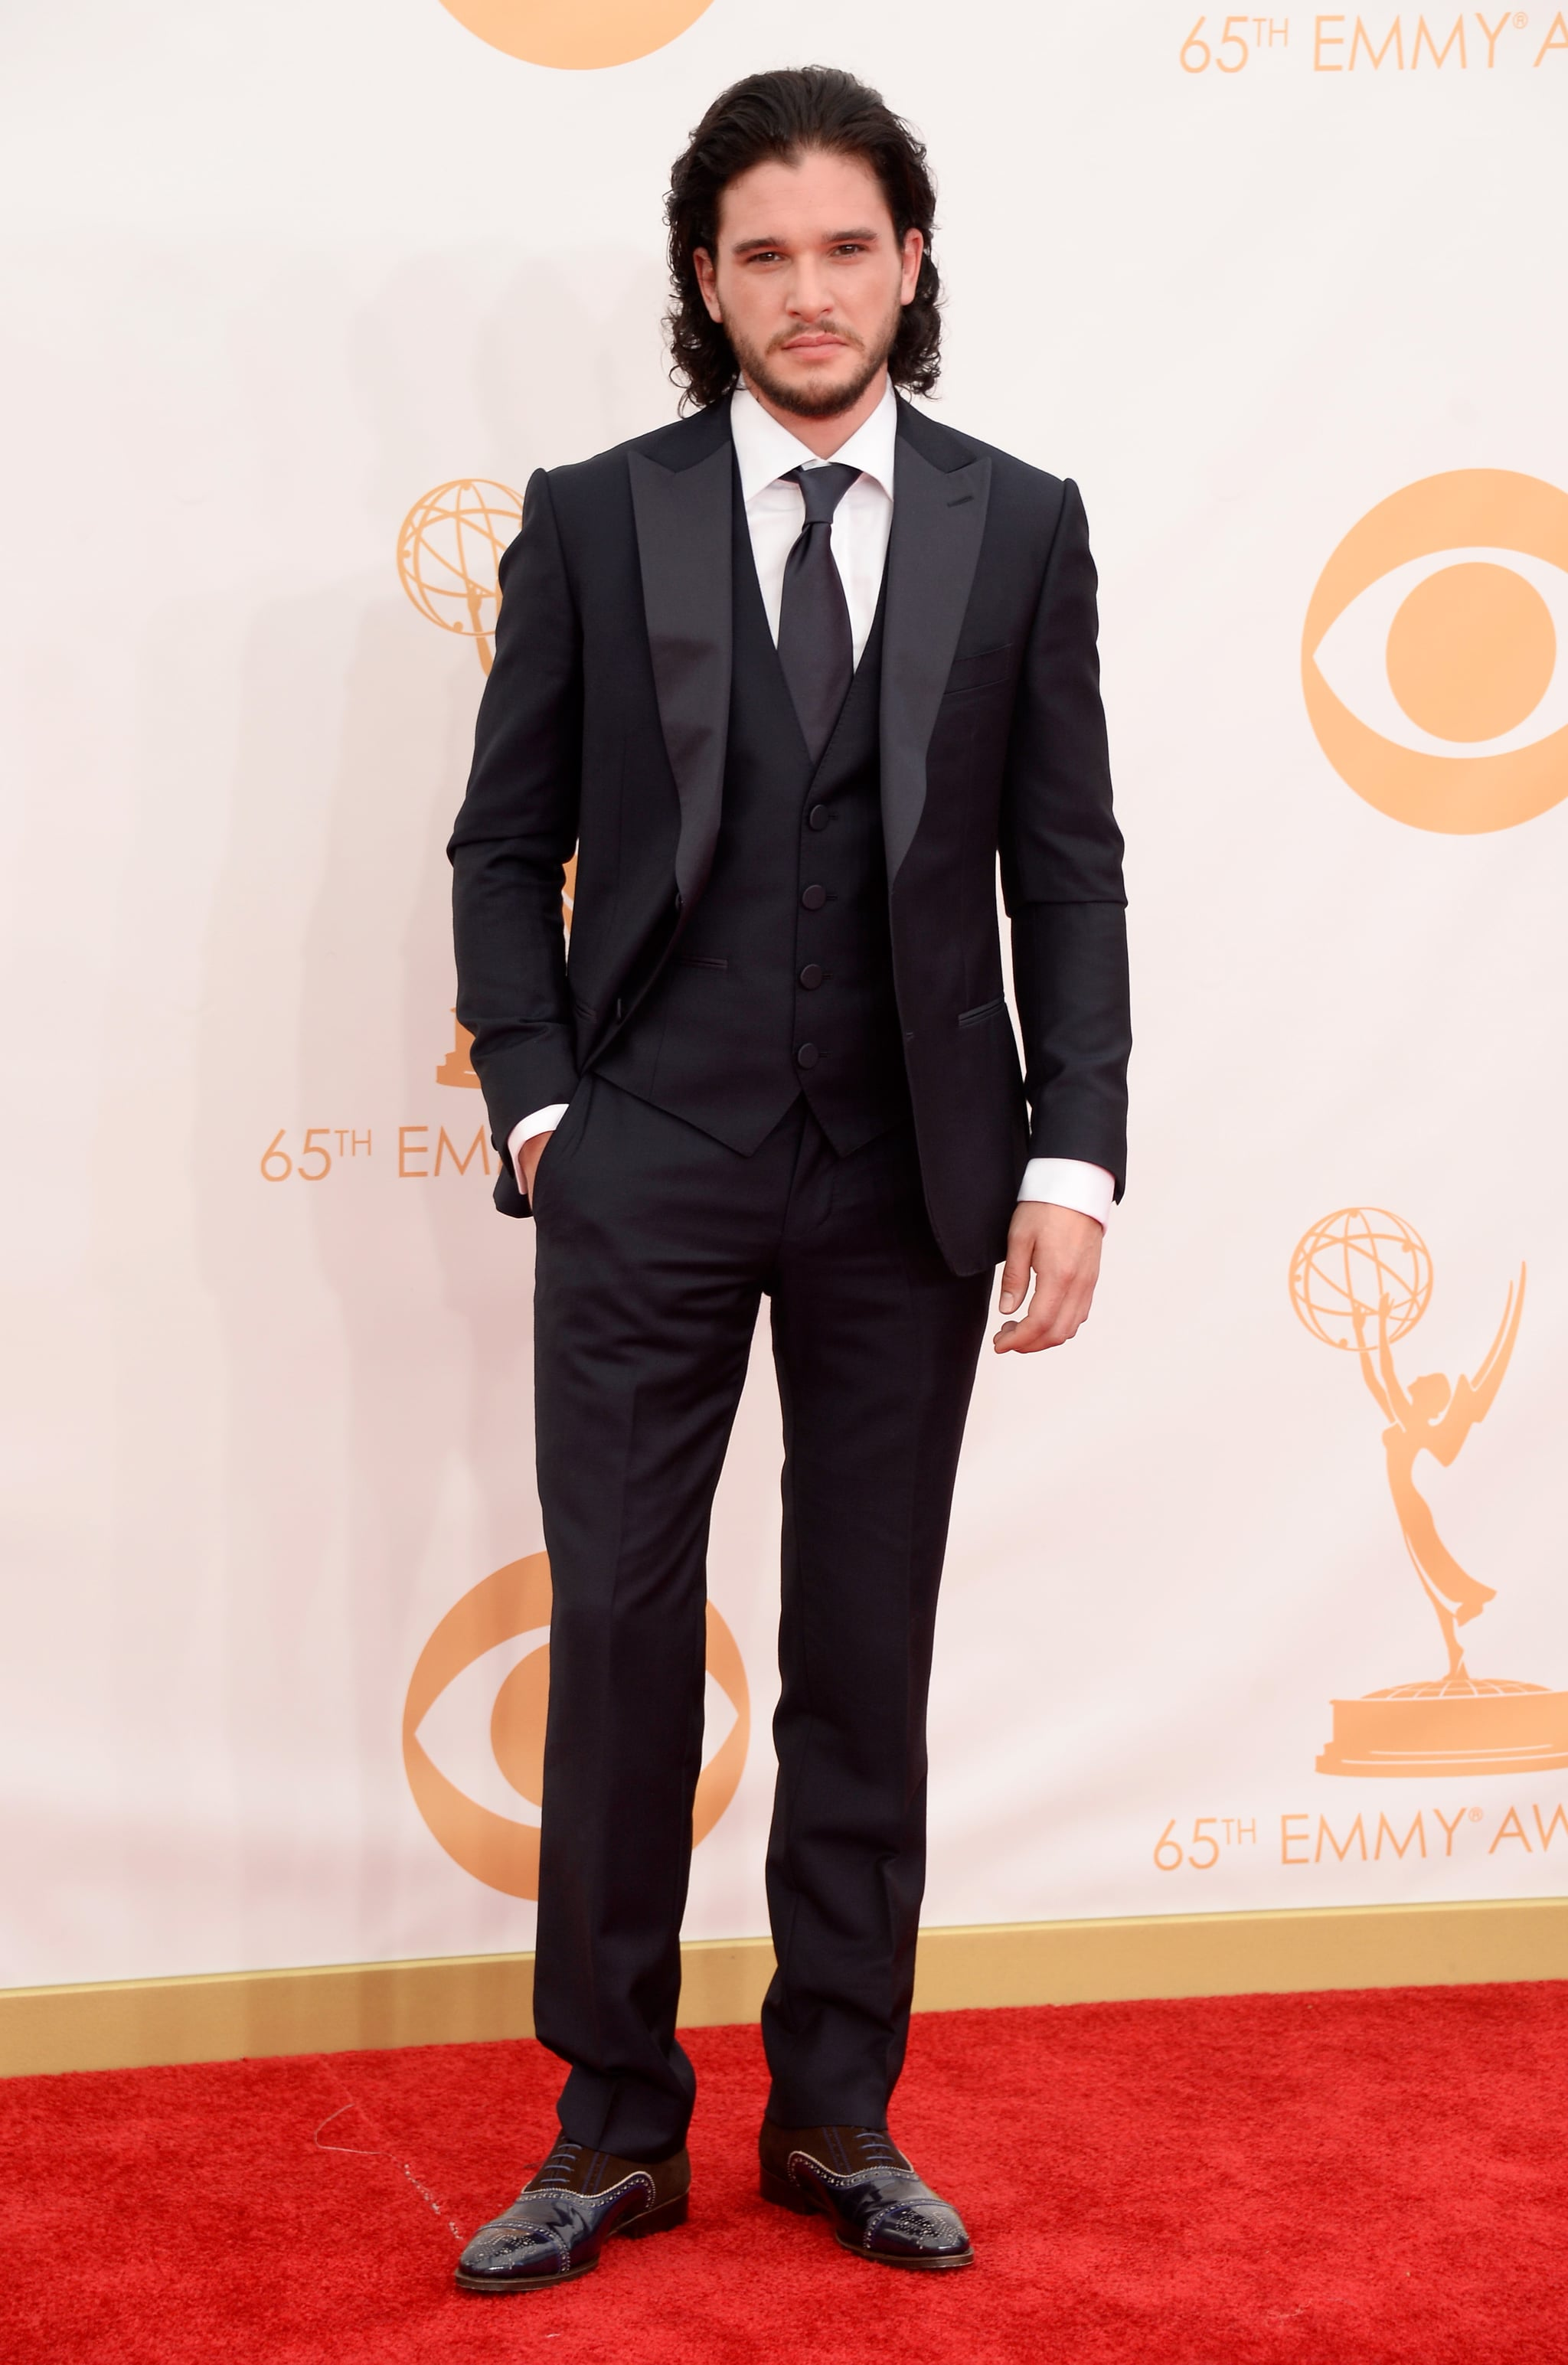 Game of Thrones star Kit Harington walked the Emmys red carpet.